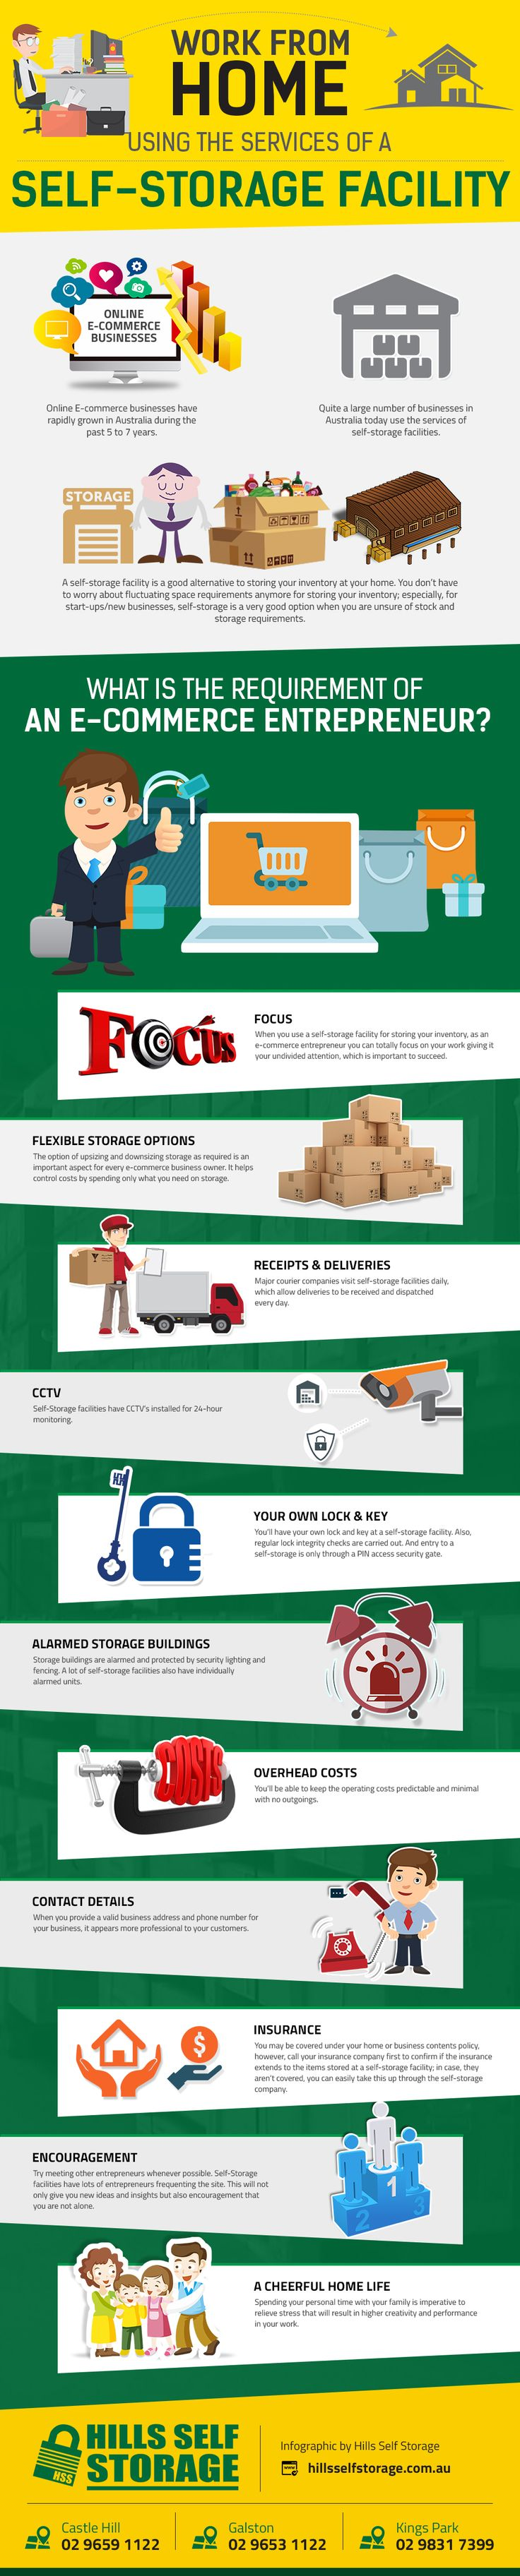 Infographic about business #storage facility to E-Commerce #business from home.